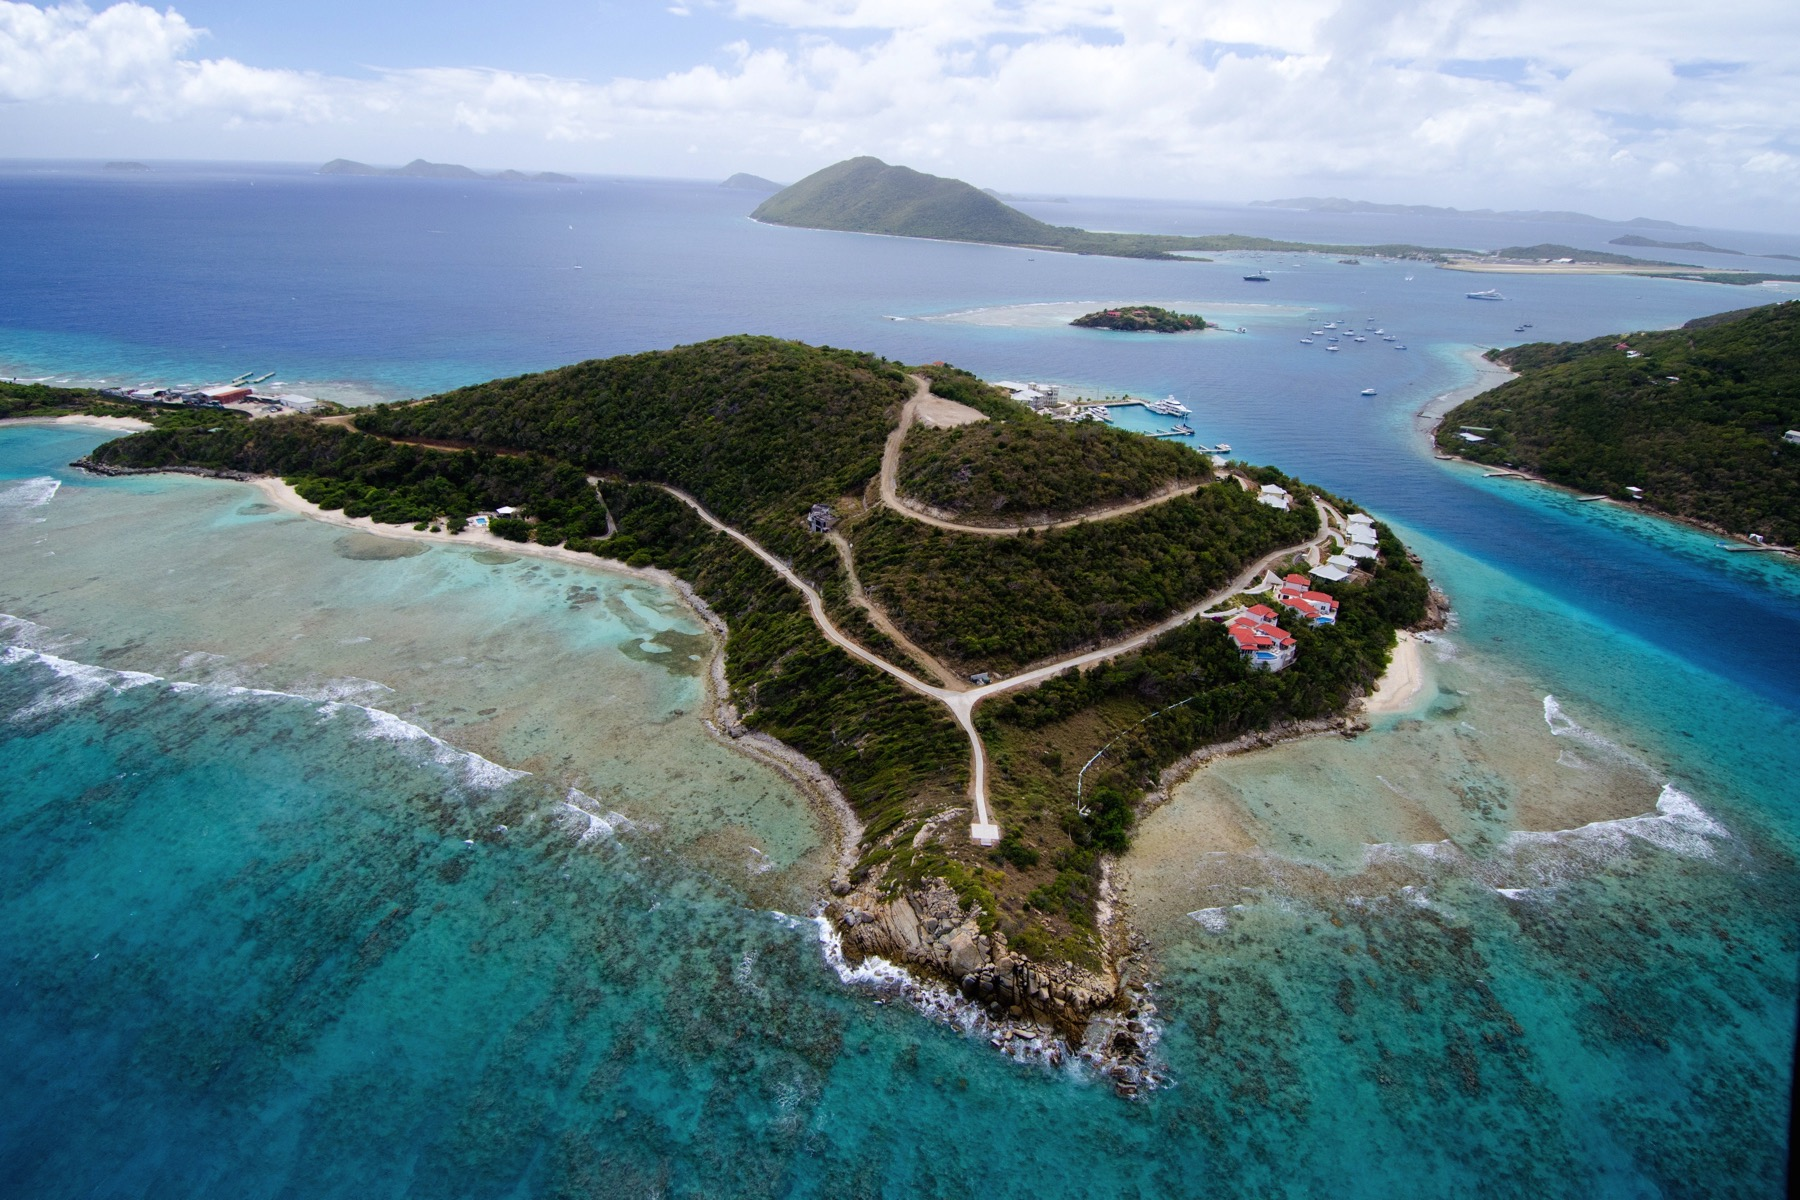 Governor's Point - Scrub Island Development Little Scrub, Scrub Island British Virgin Islands